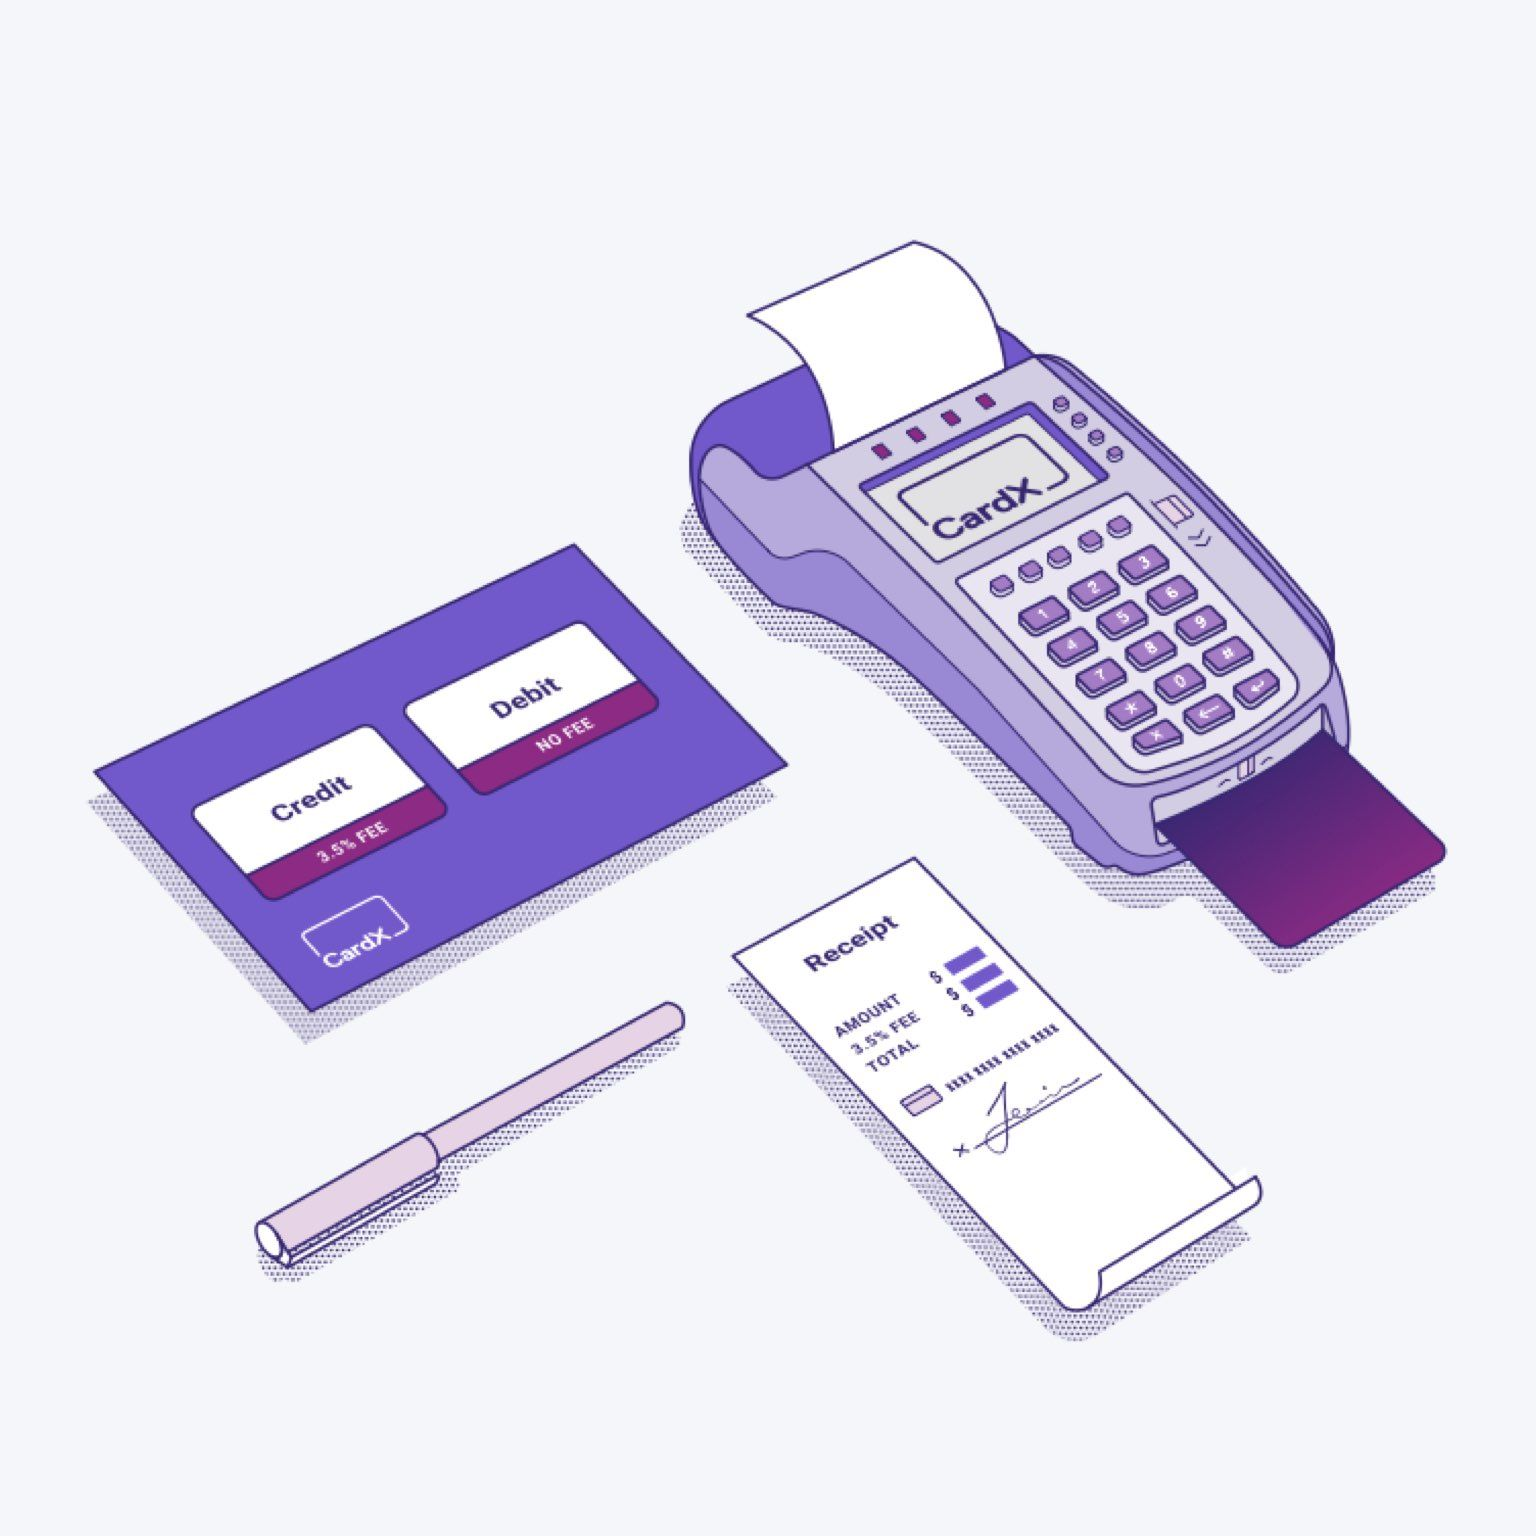 CardX product illustrations